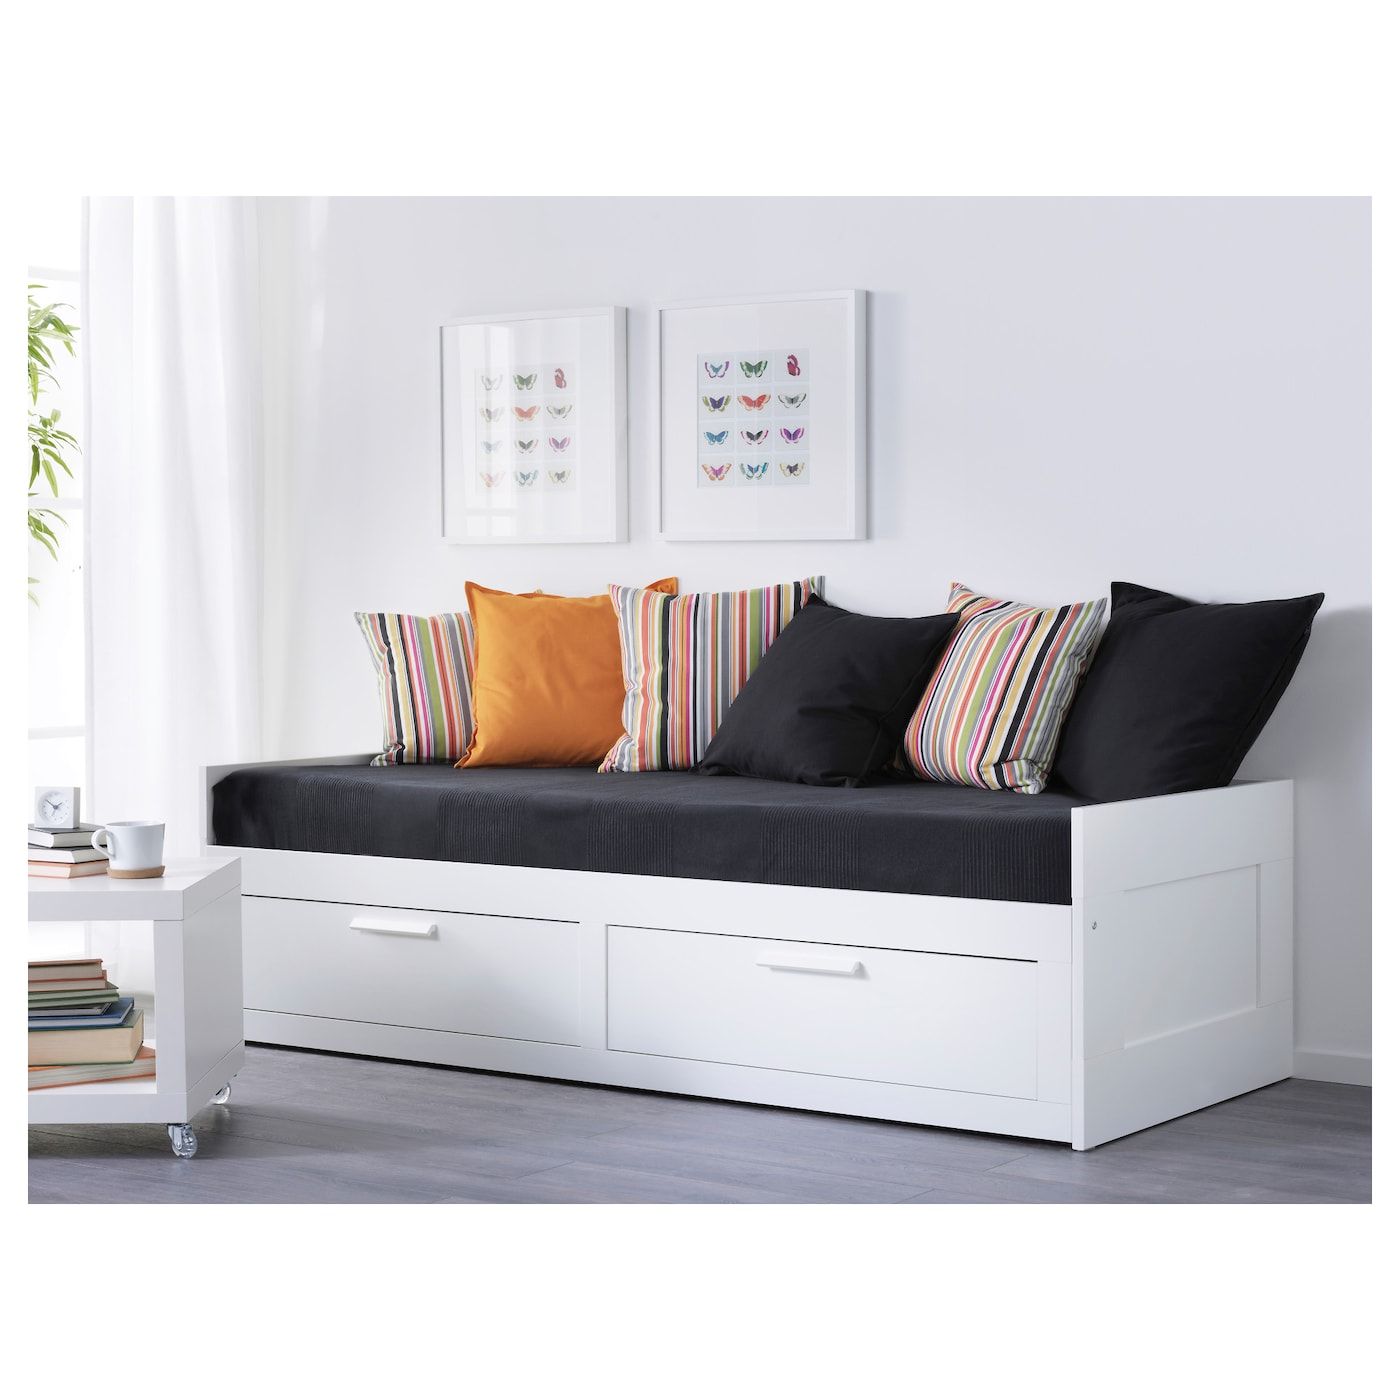 Brimnes day bed w 2 drawers 2 mattresses white moshult firm 80 x 200 cm ikea - Letto brimnes ikea ...